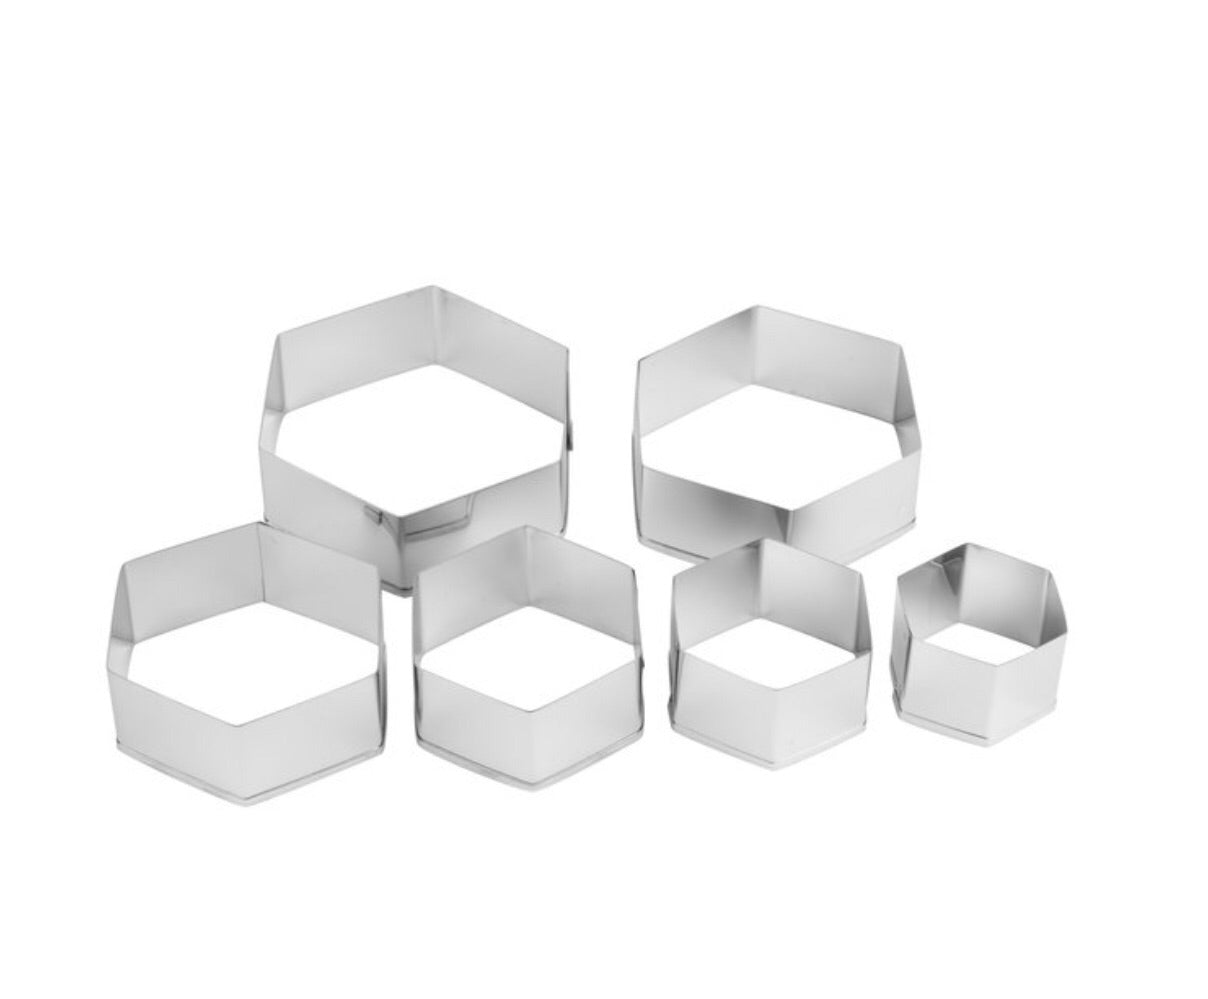 Ateco 5251 6-Piece Stainless Steel Hexagon Cutter Set